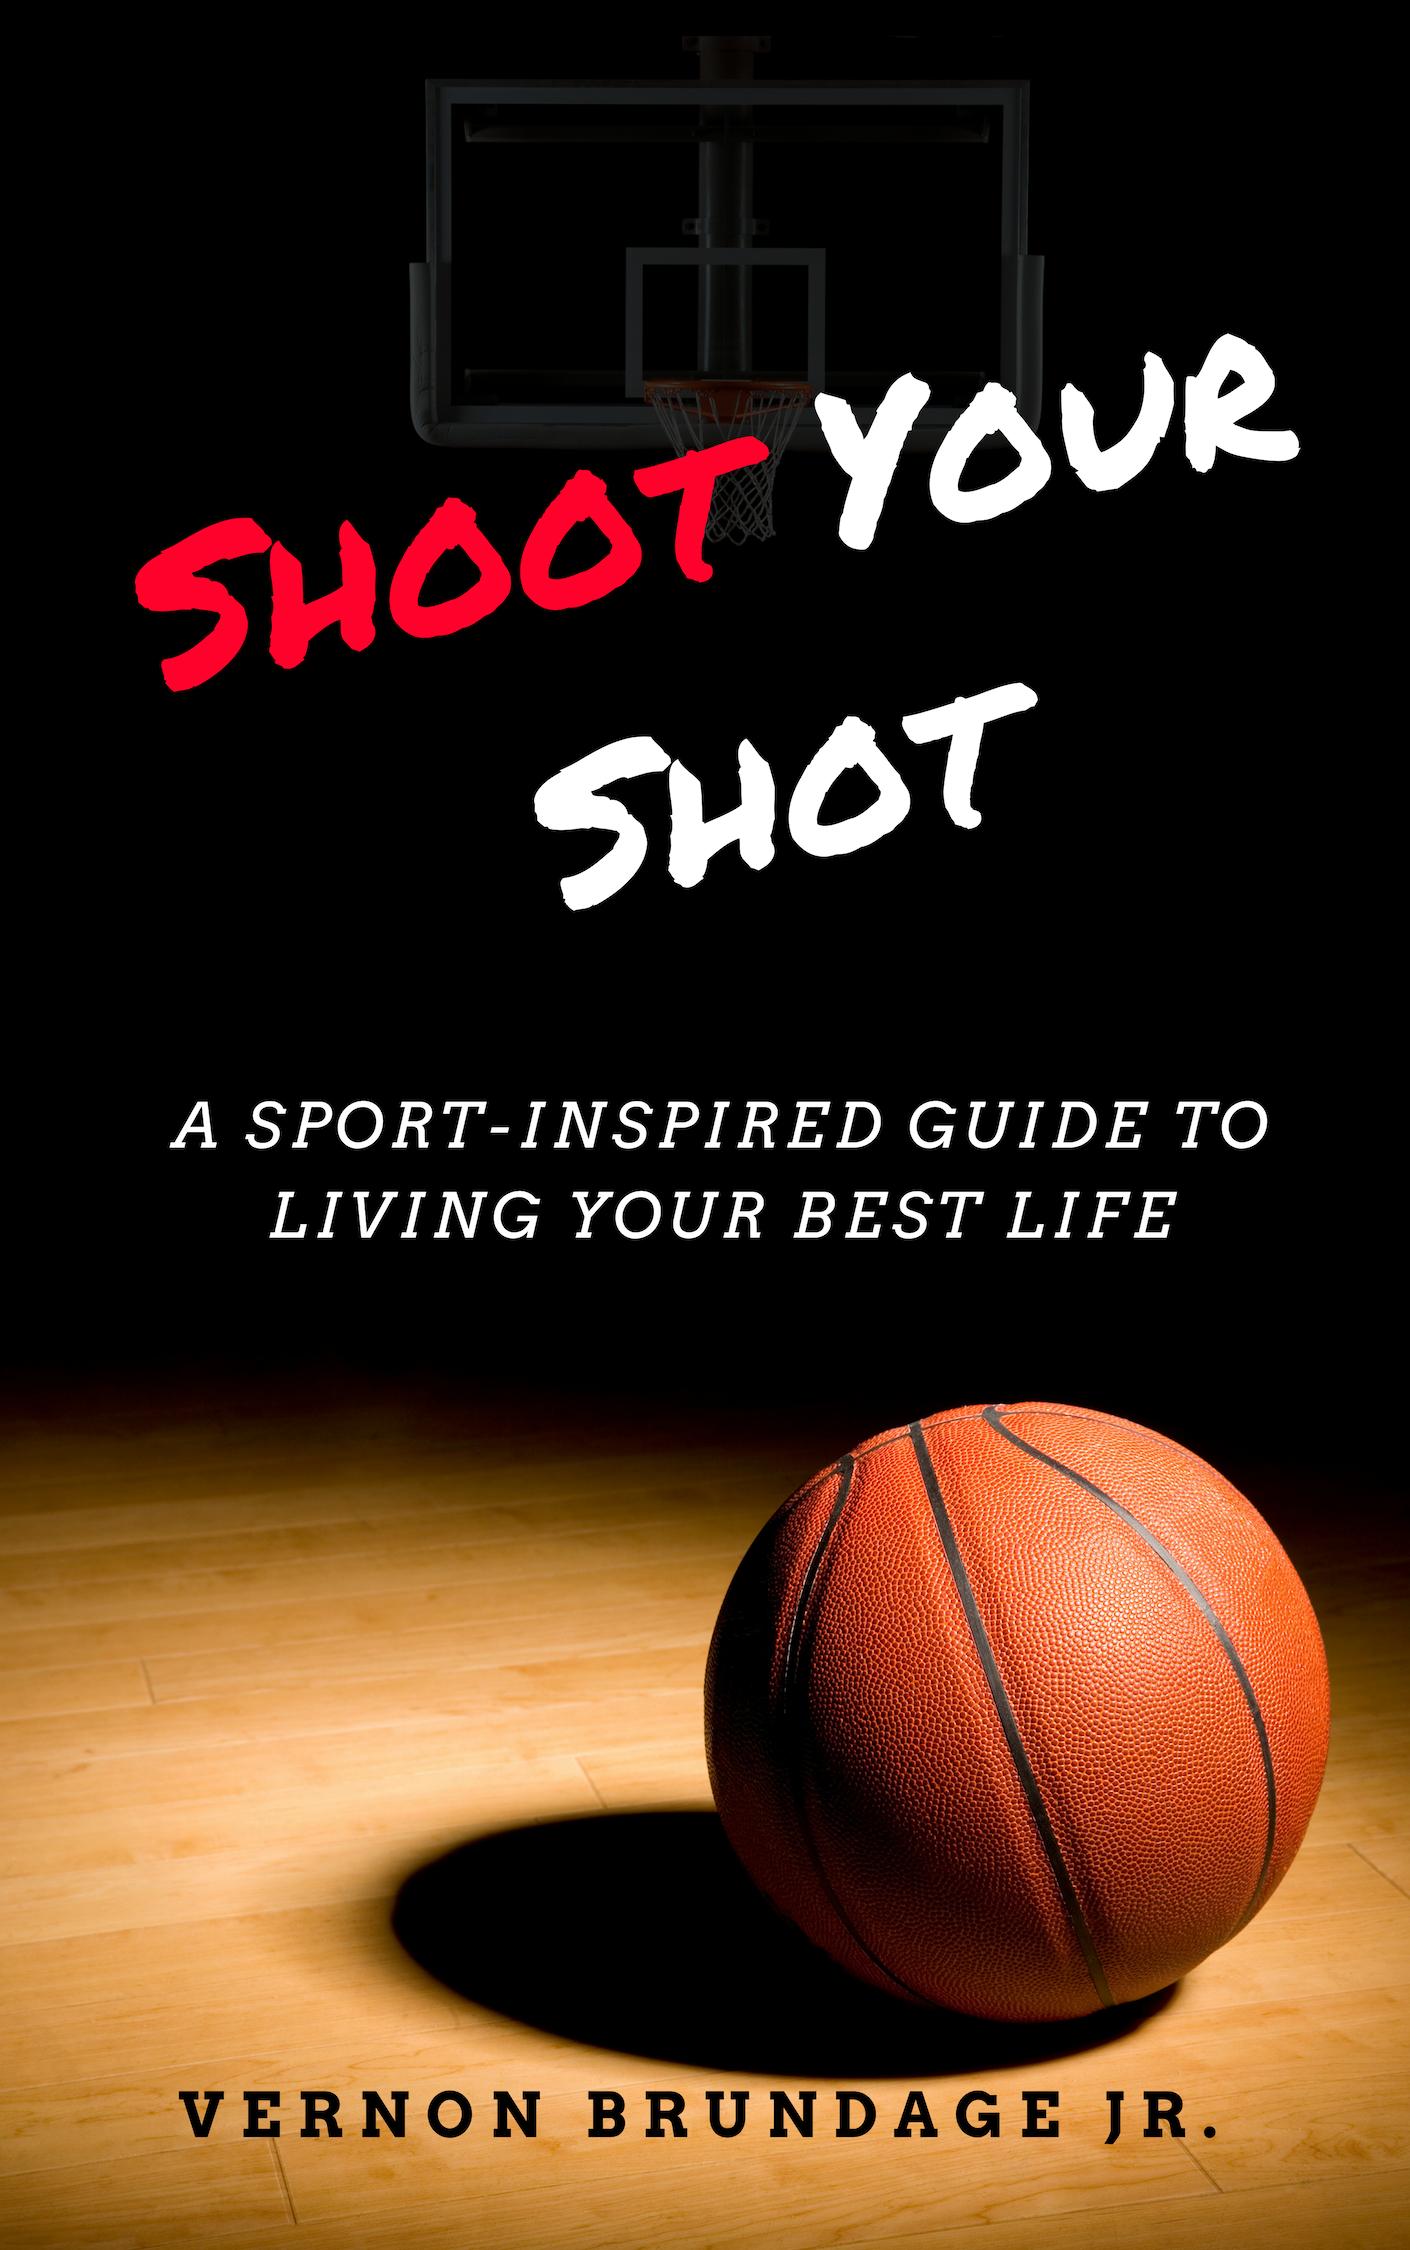 Shoot Your Shot: A Sport-Inspired Guide To Living Your Best Life